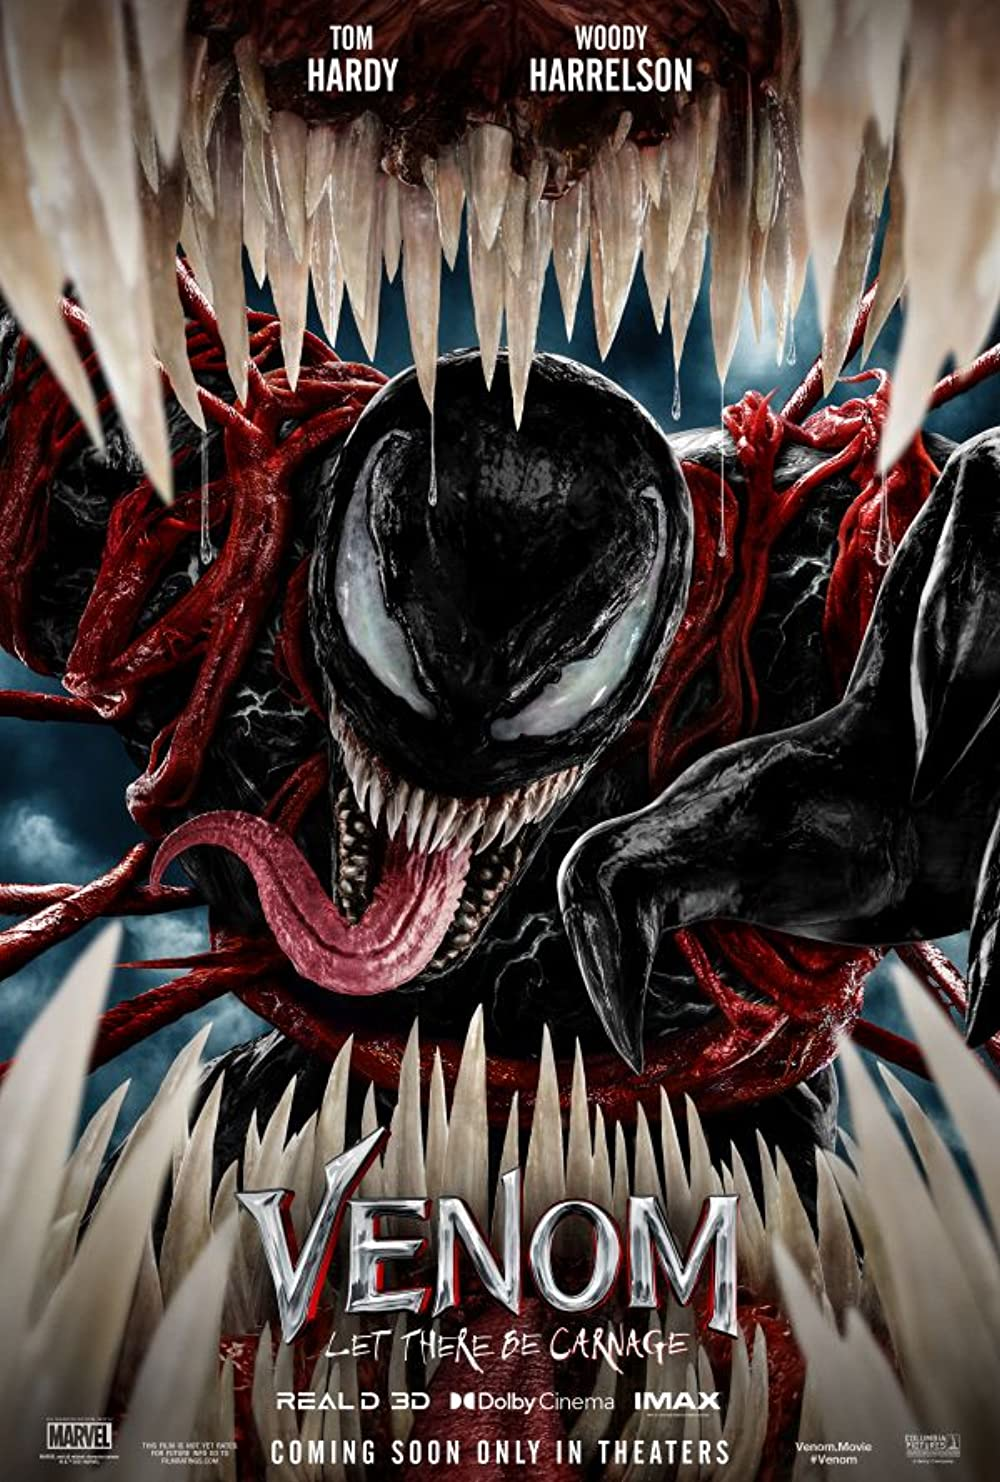 Venom Let There Be Carnage 2021 Hindi Dubbed Official Trailer 1080p HDRip 43MB Download